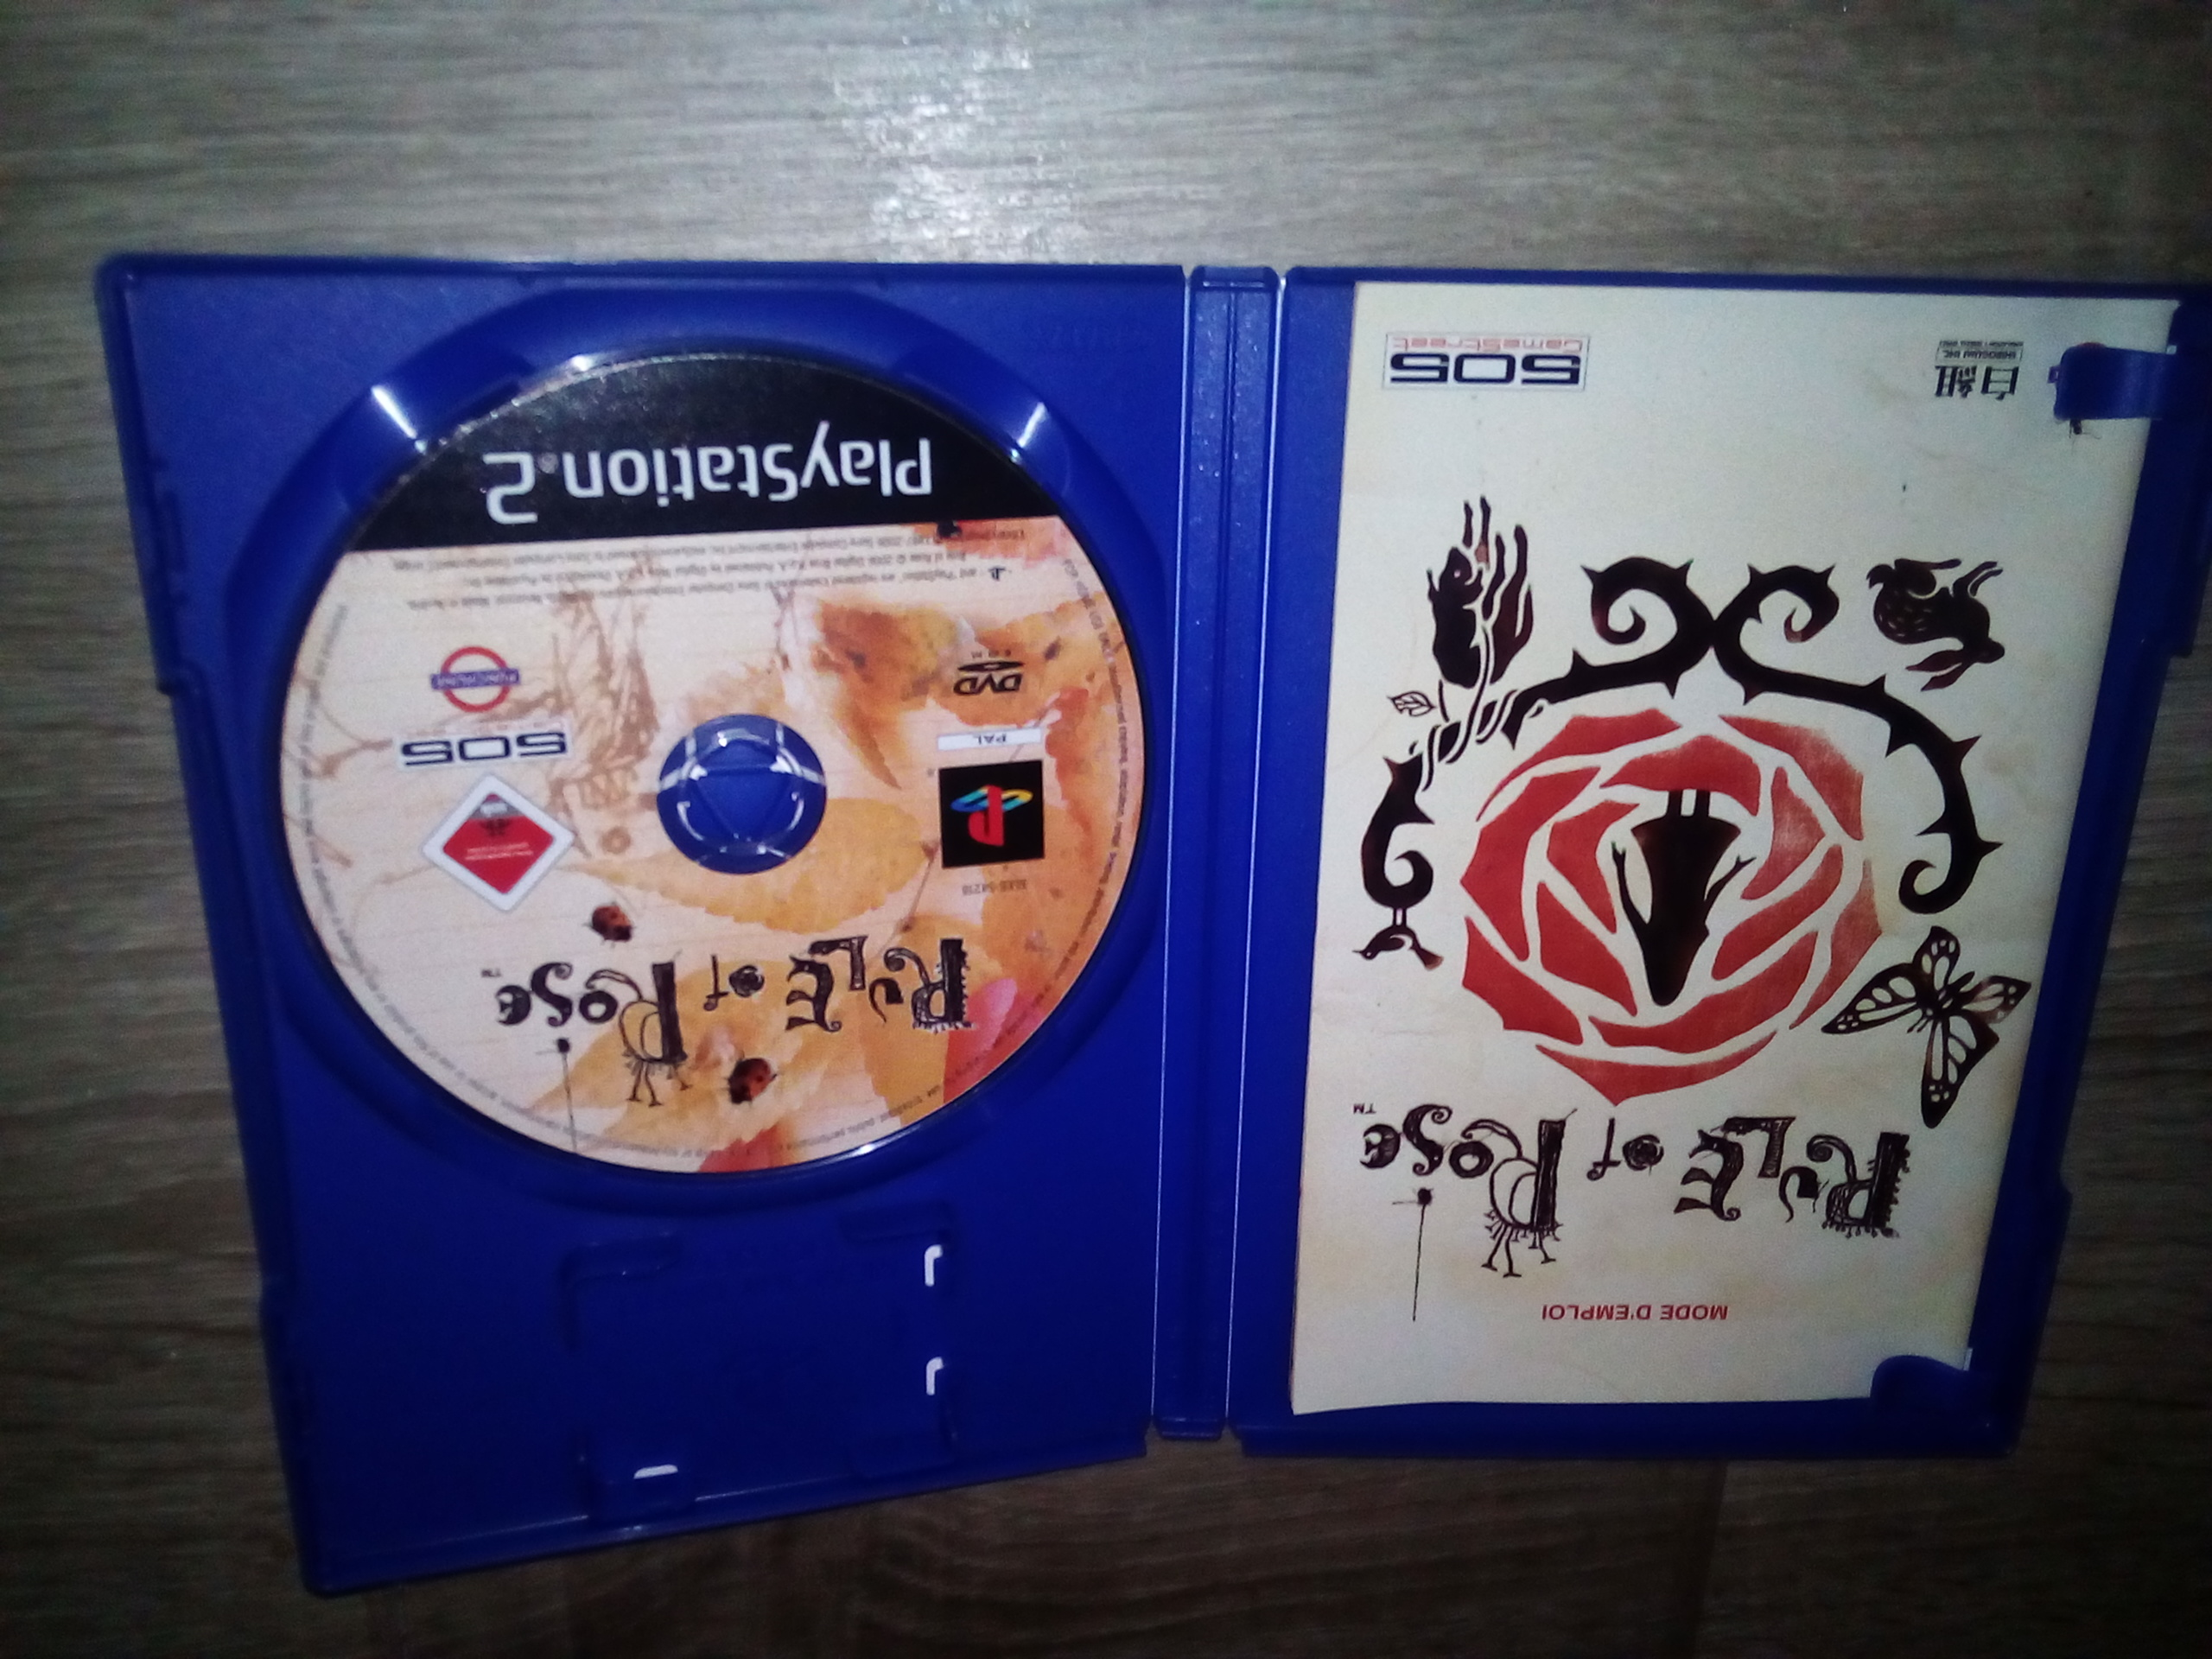 [VDS] Rule of rose fr PS2 296863IMG20171226215712